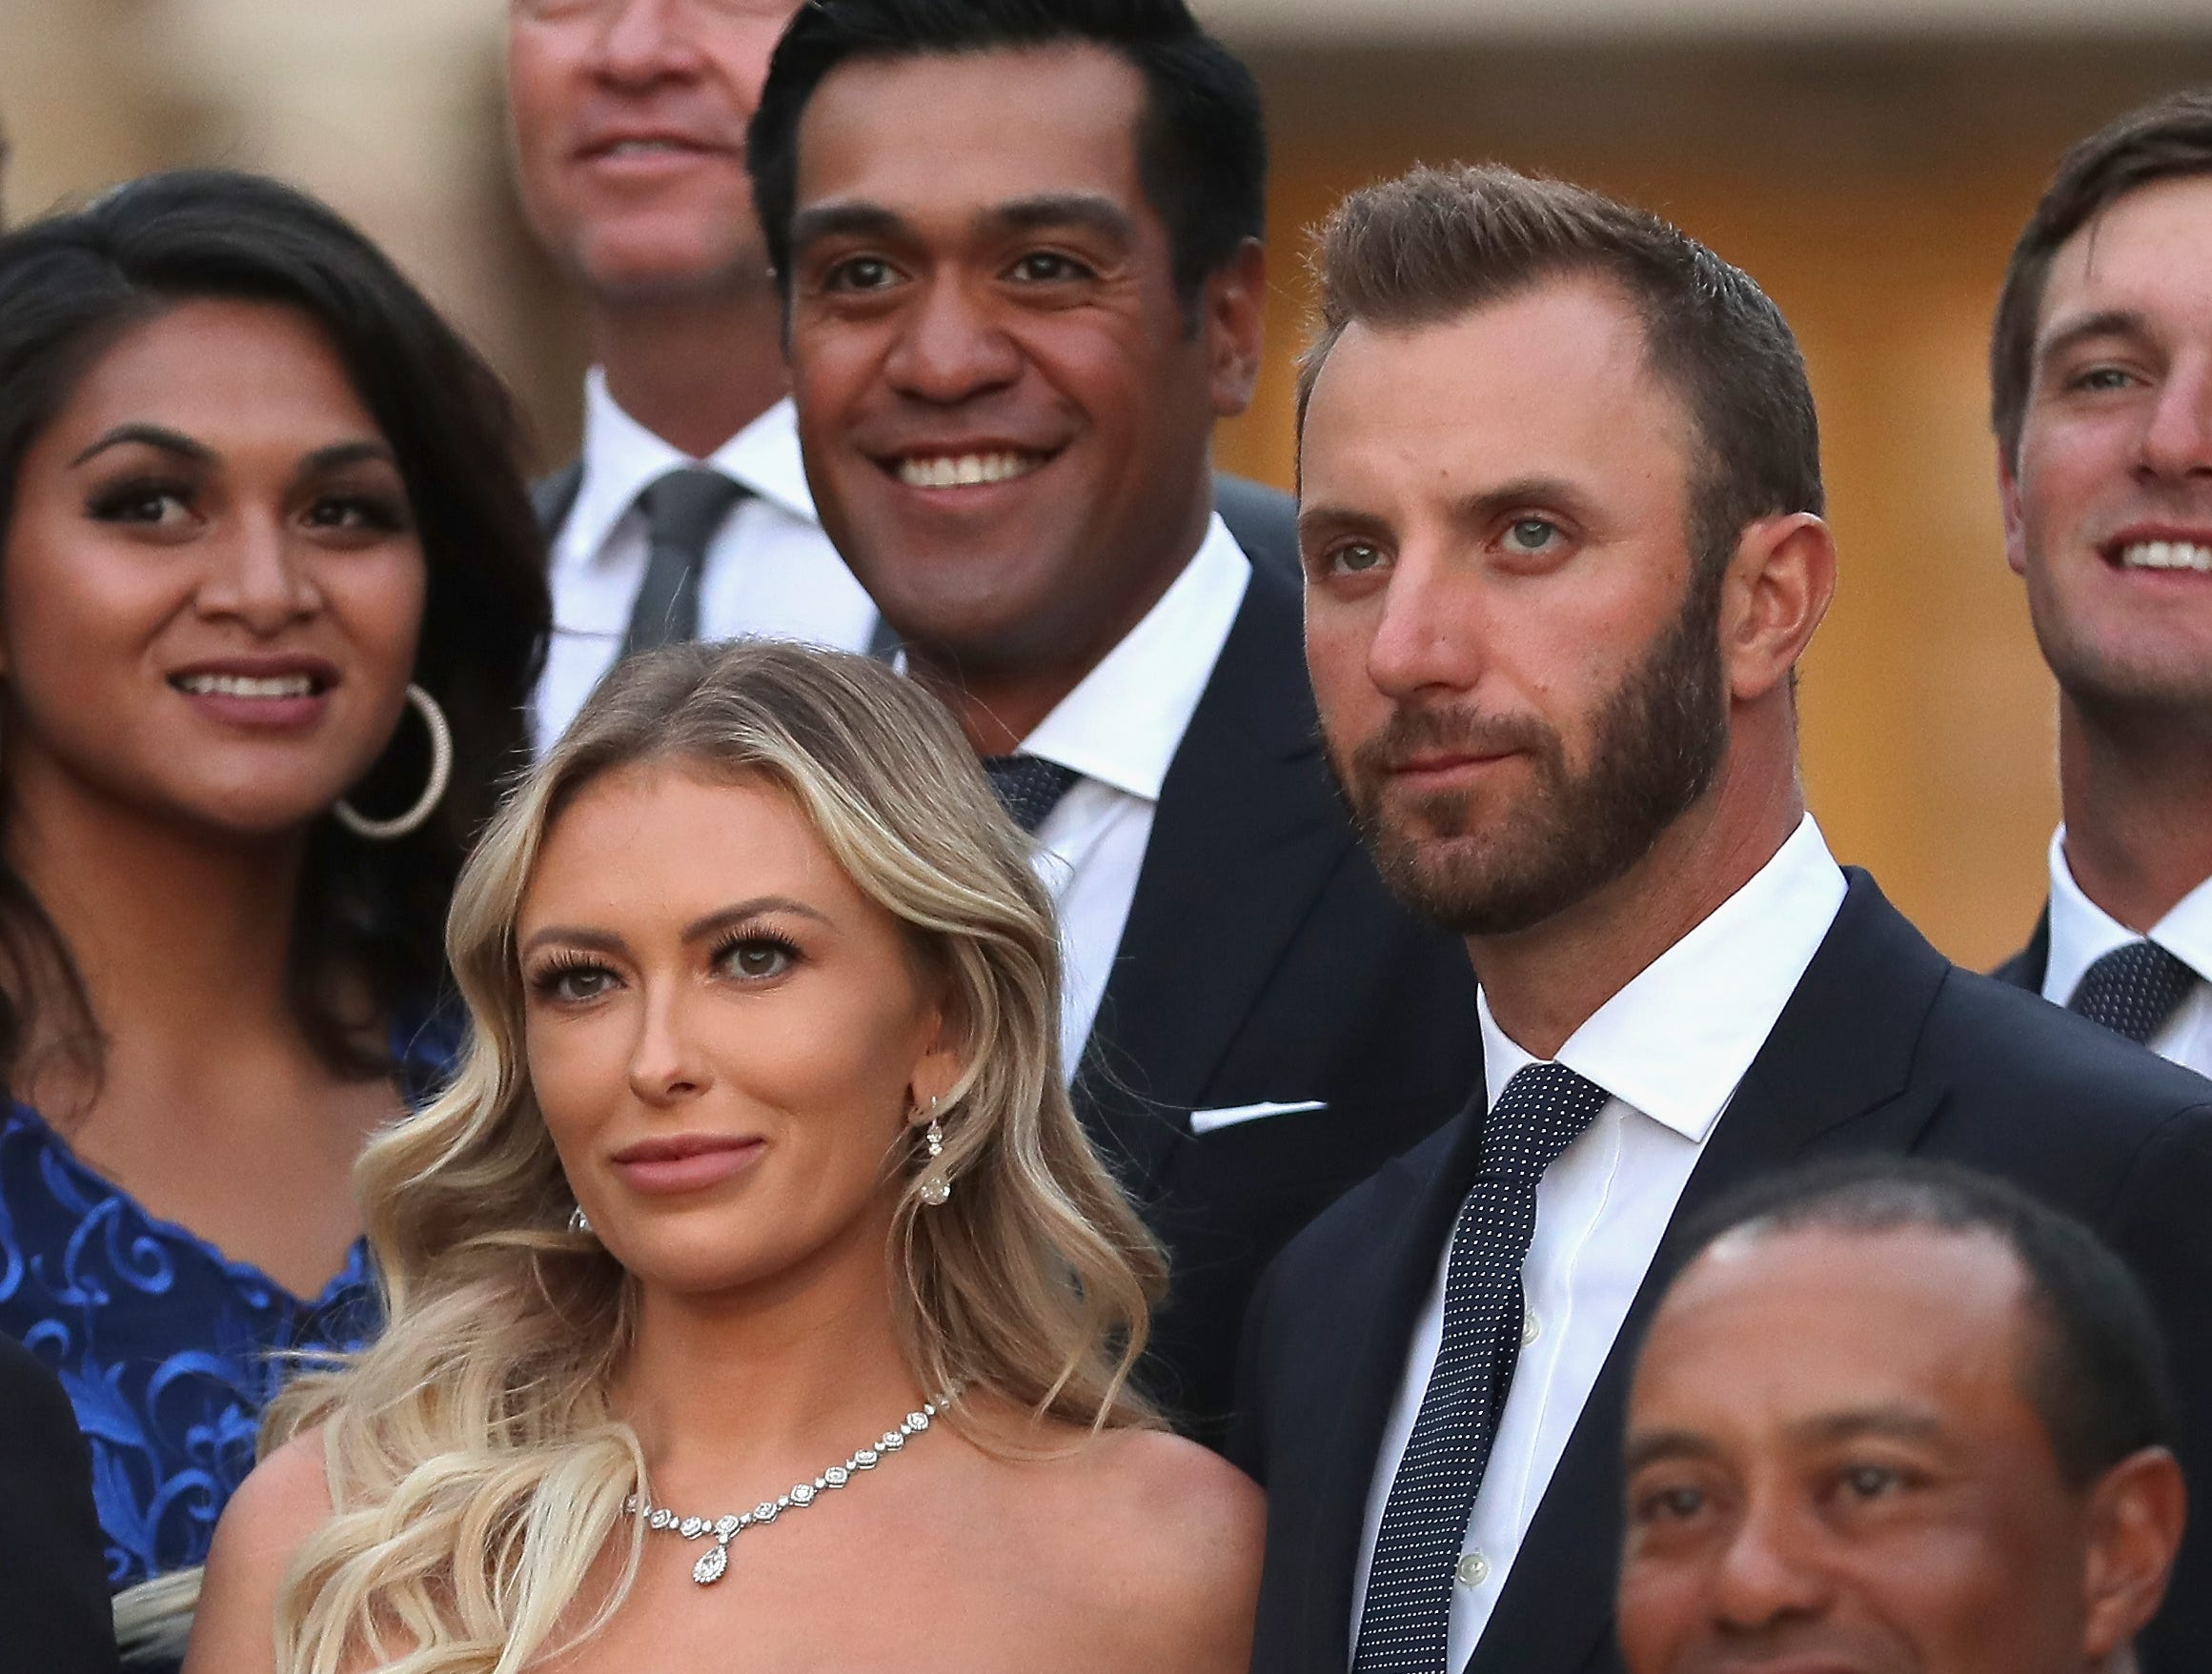 Dustin Johnson and his partner Paulina Gretzky poses before the Ryder Cup gala Sept. 26.